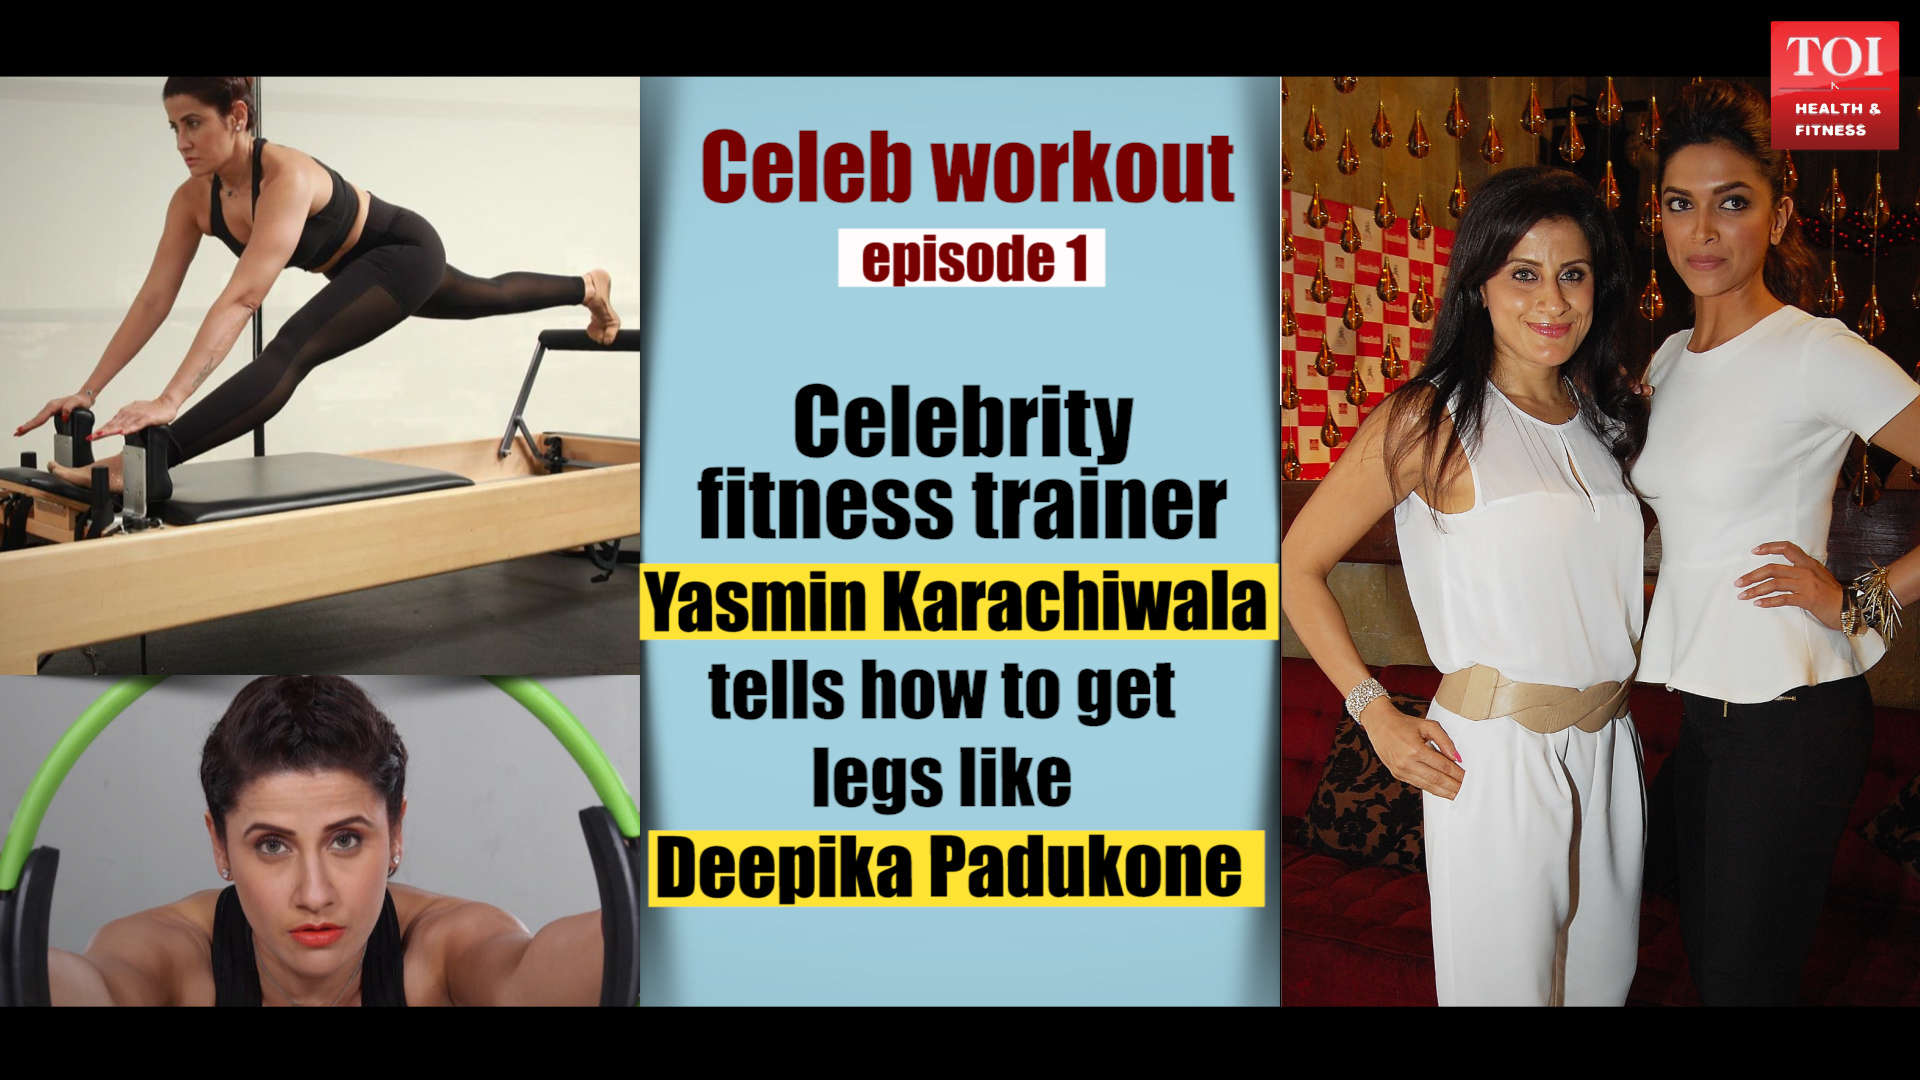 celebrity-fitness-trainer-yasmin-karachiwala-tells-how-to-get-legs-like-deepika-padukone